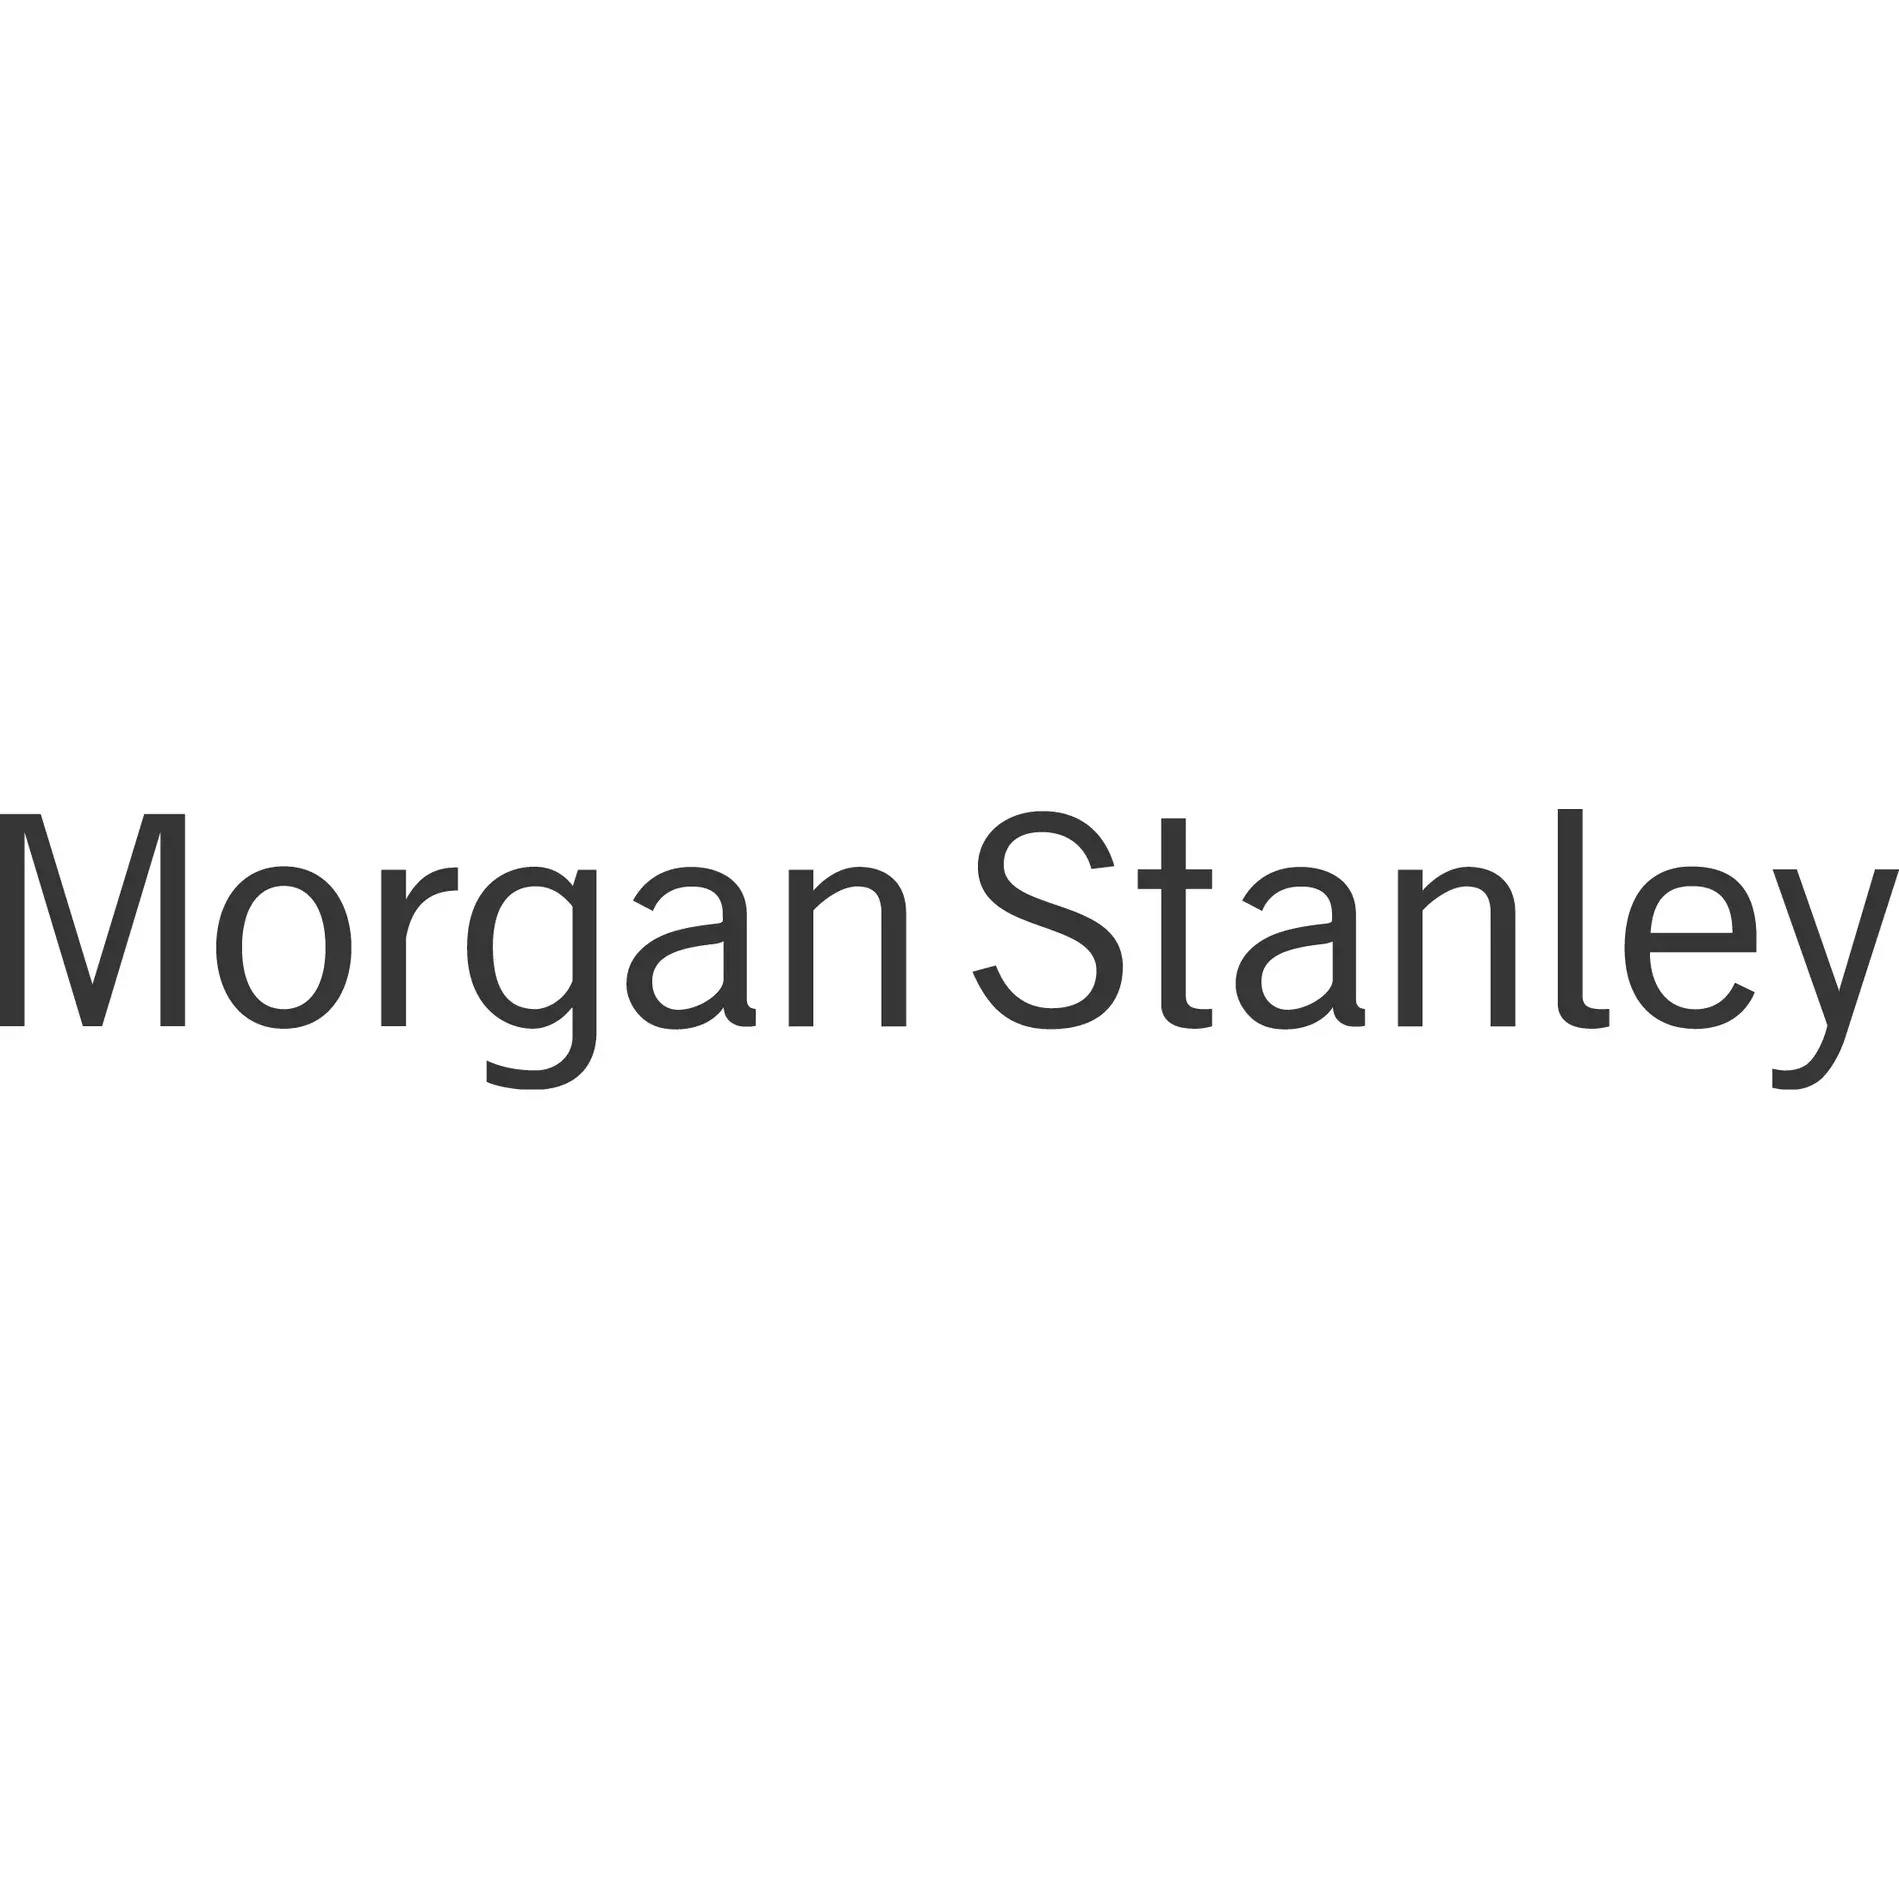 The Assaley Feck Herold Group - Morgan Stanley